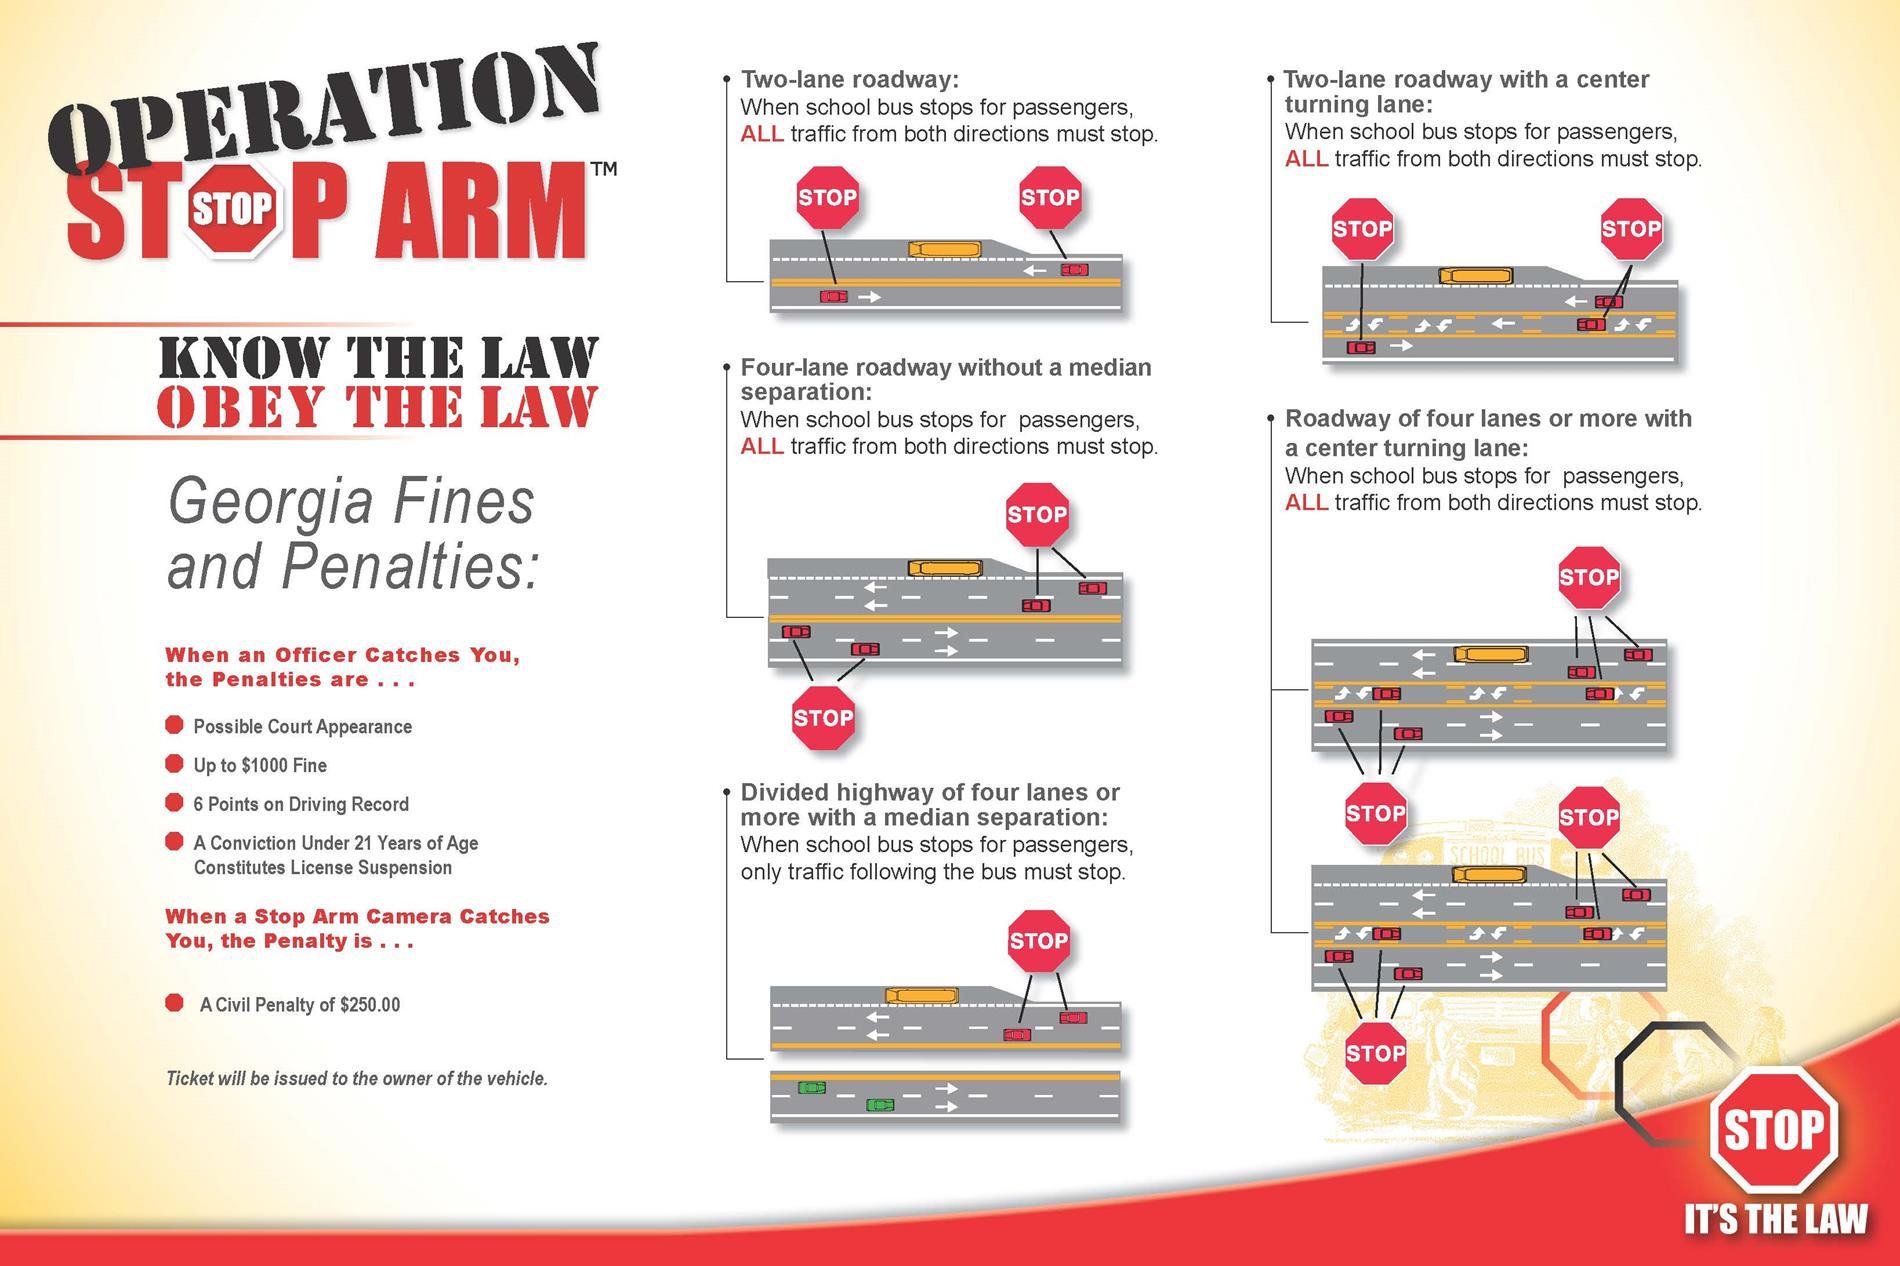 Operation Stop Arm Poster